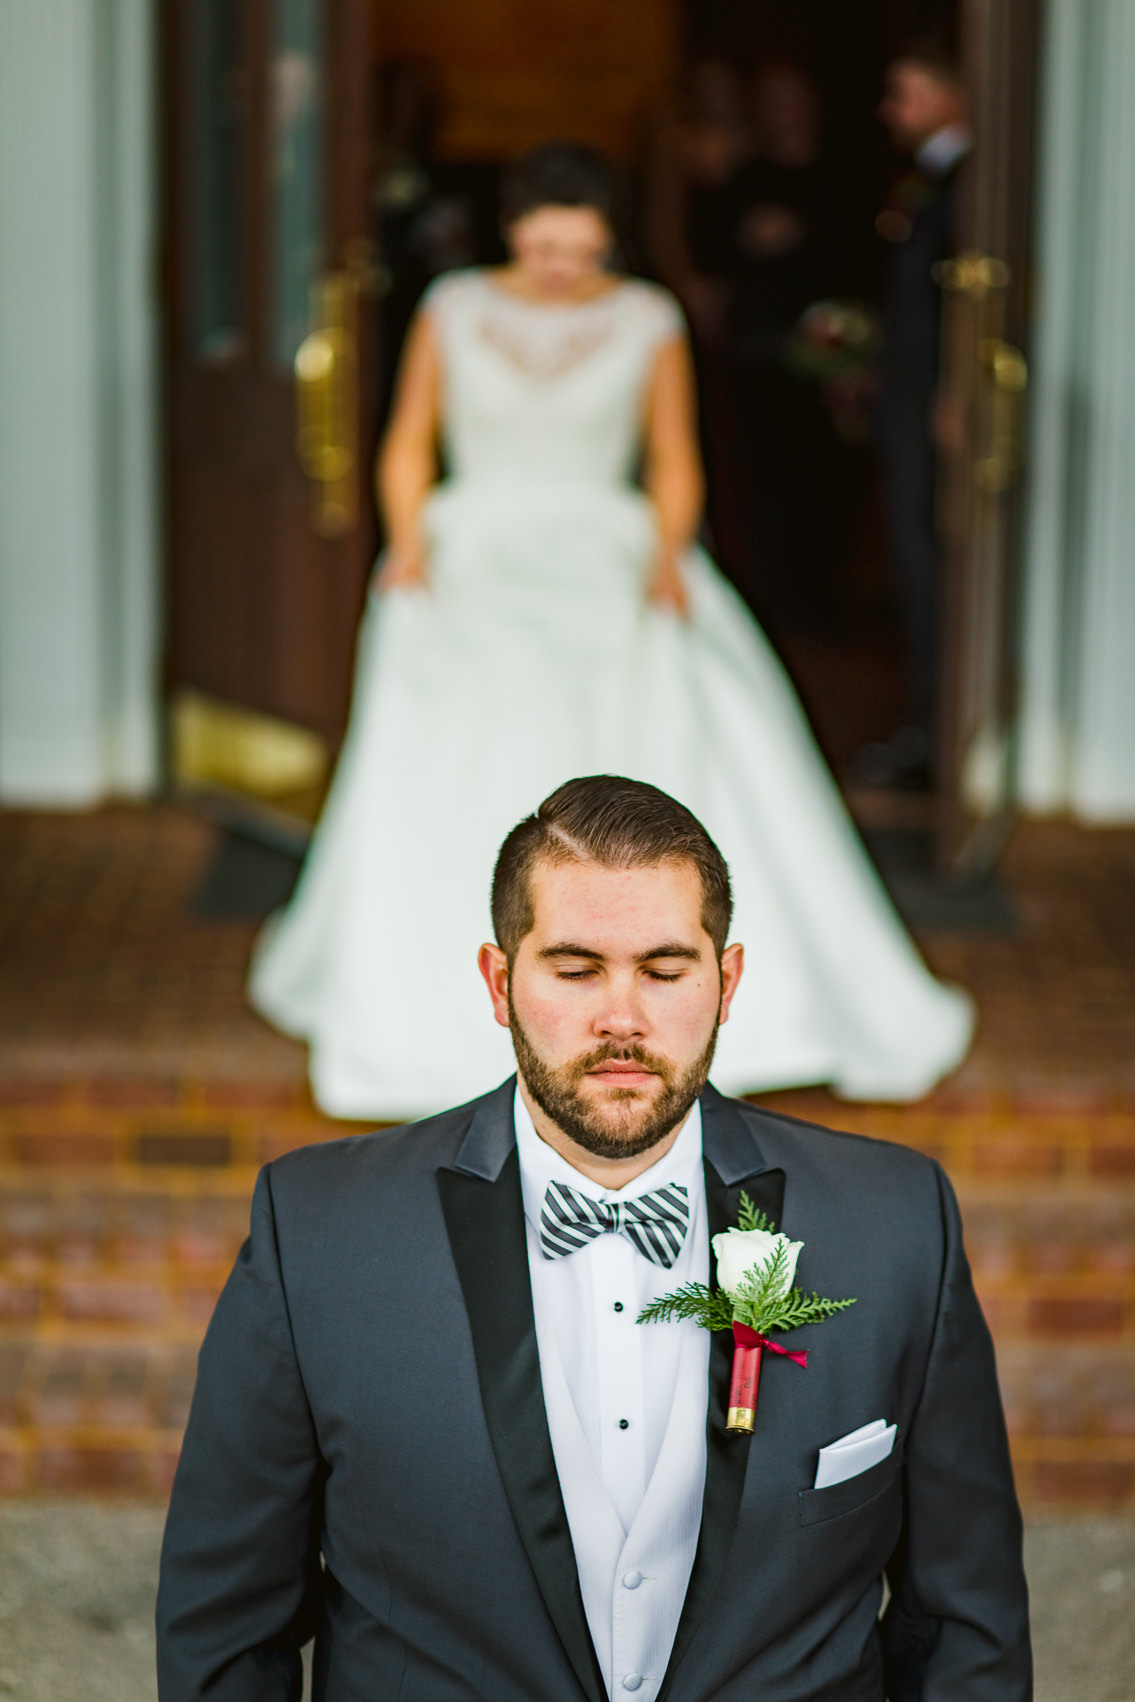 delafield-hotel-wedding-photo-5.jpg